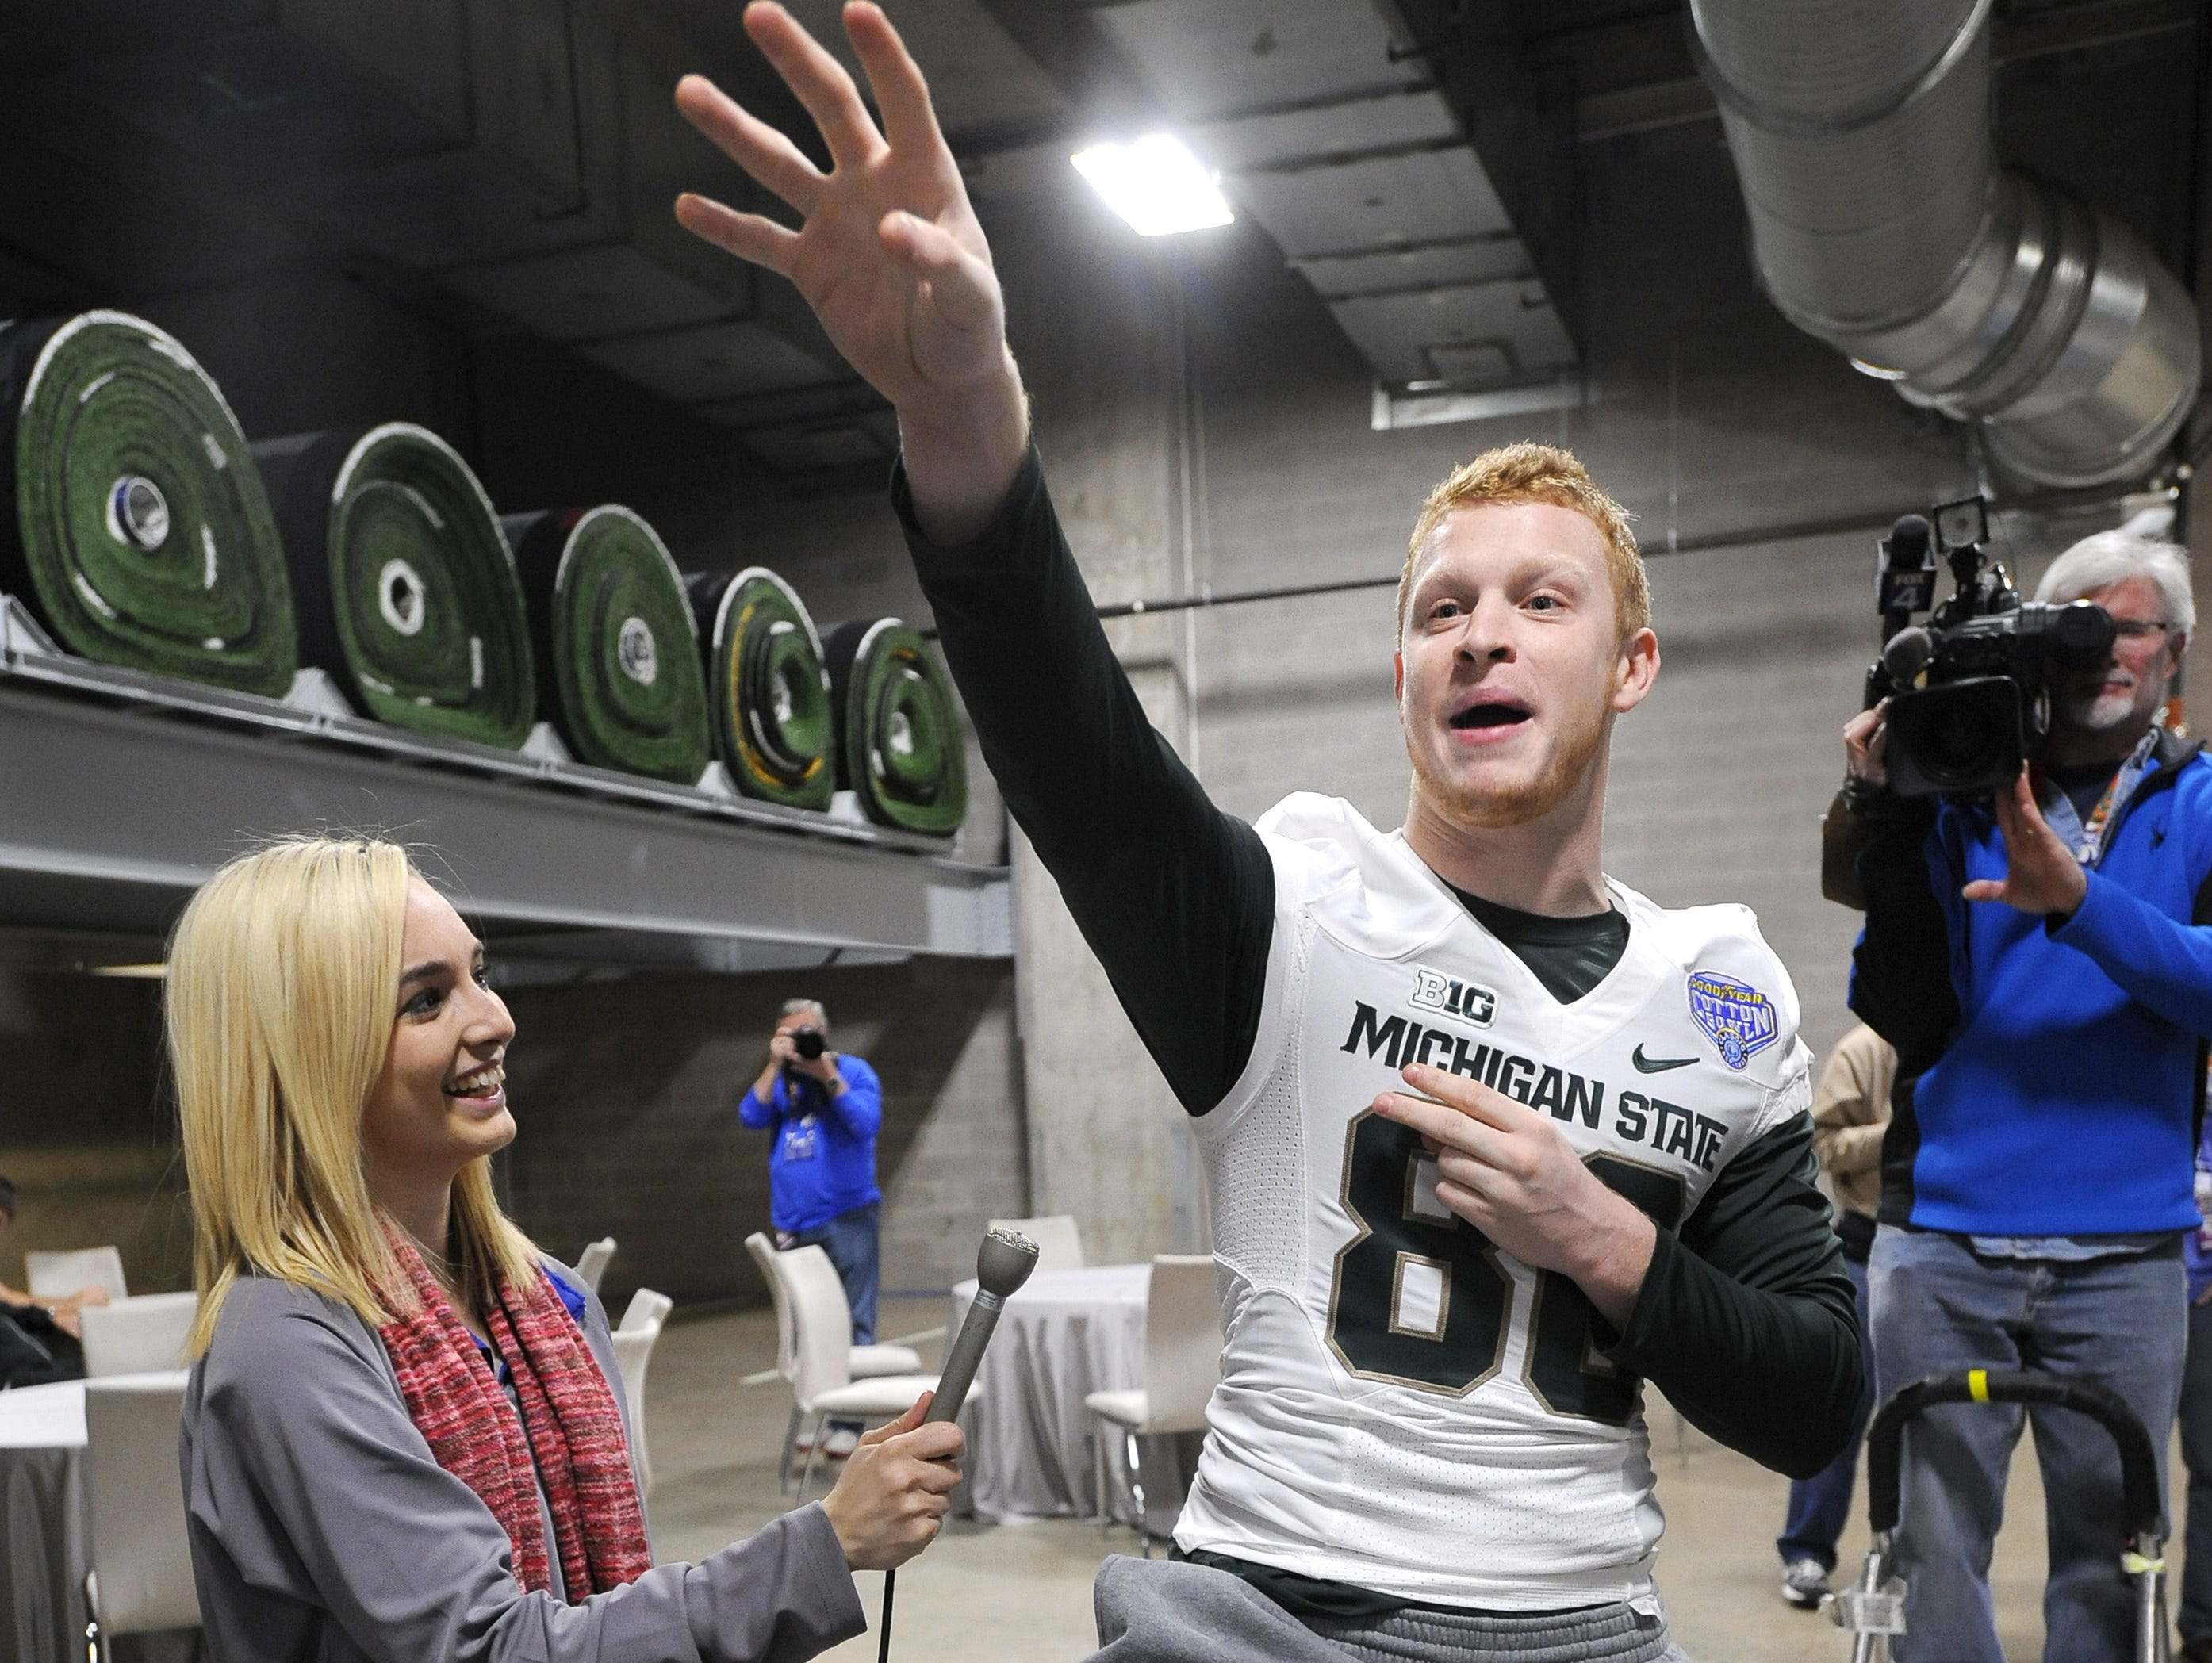 MSU's Matt Macksood cracks up the audience and his teammates with impersonations of MSU football coaches, including assistant Mike Tressel, during Cotton Bowl Classic media day on Dec. 30, 2014.